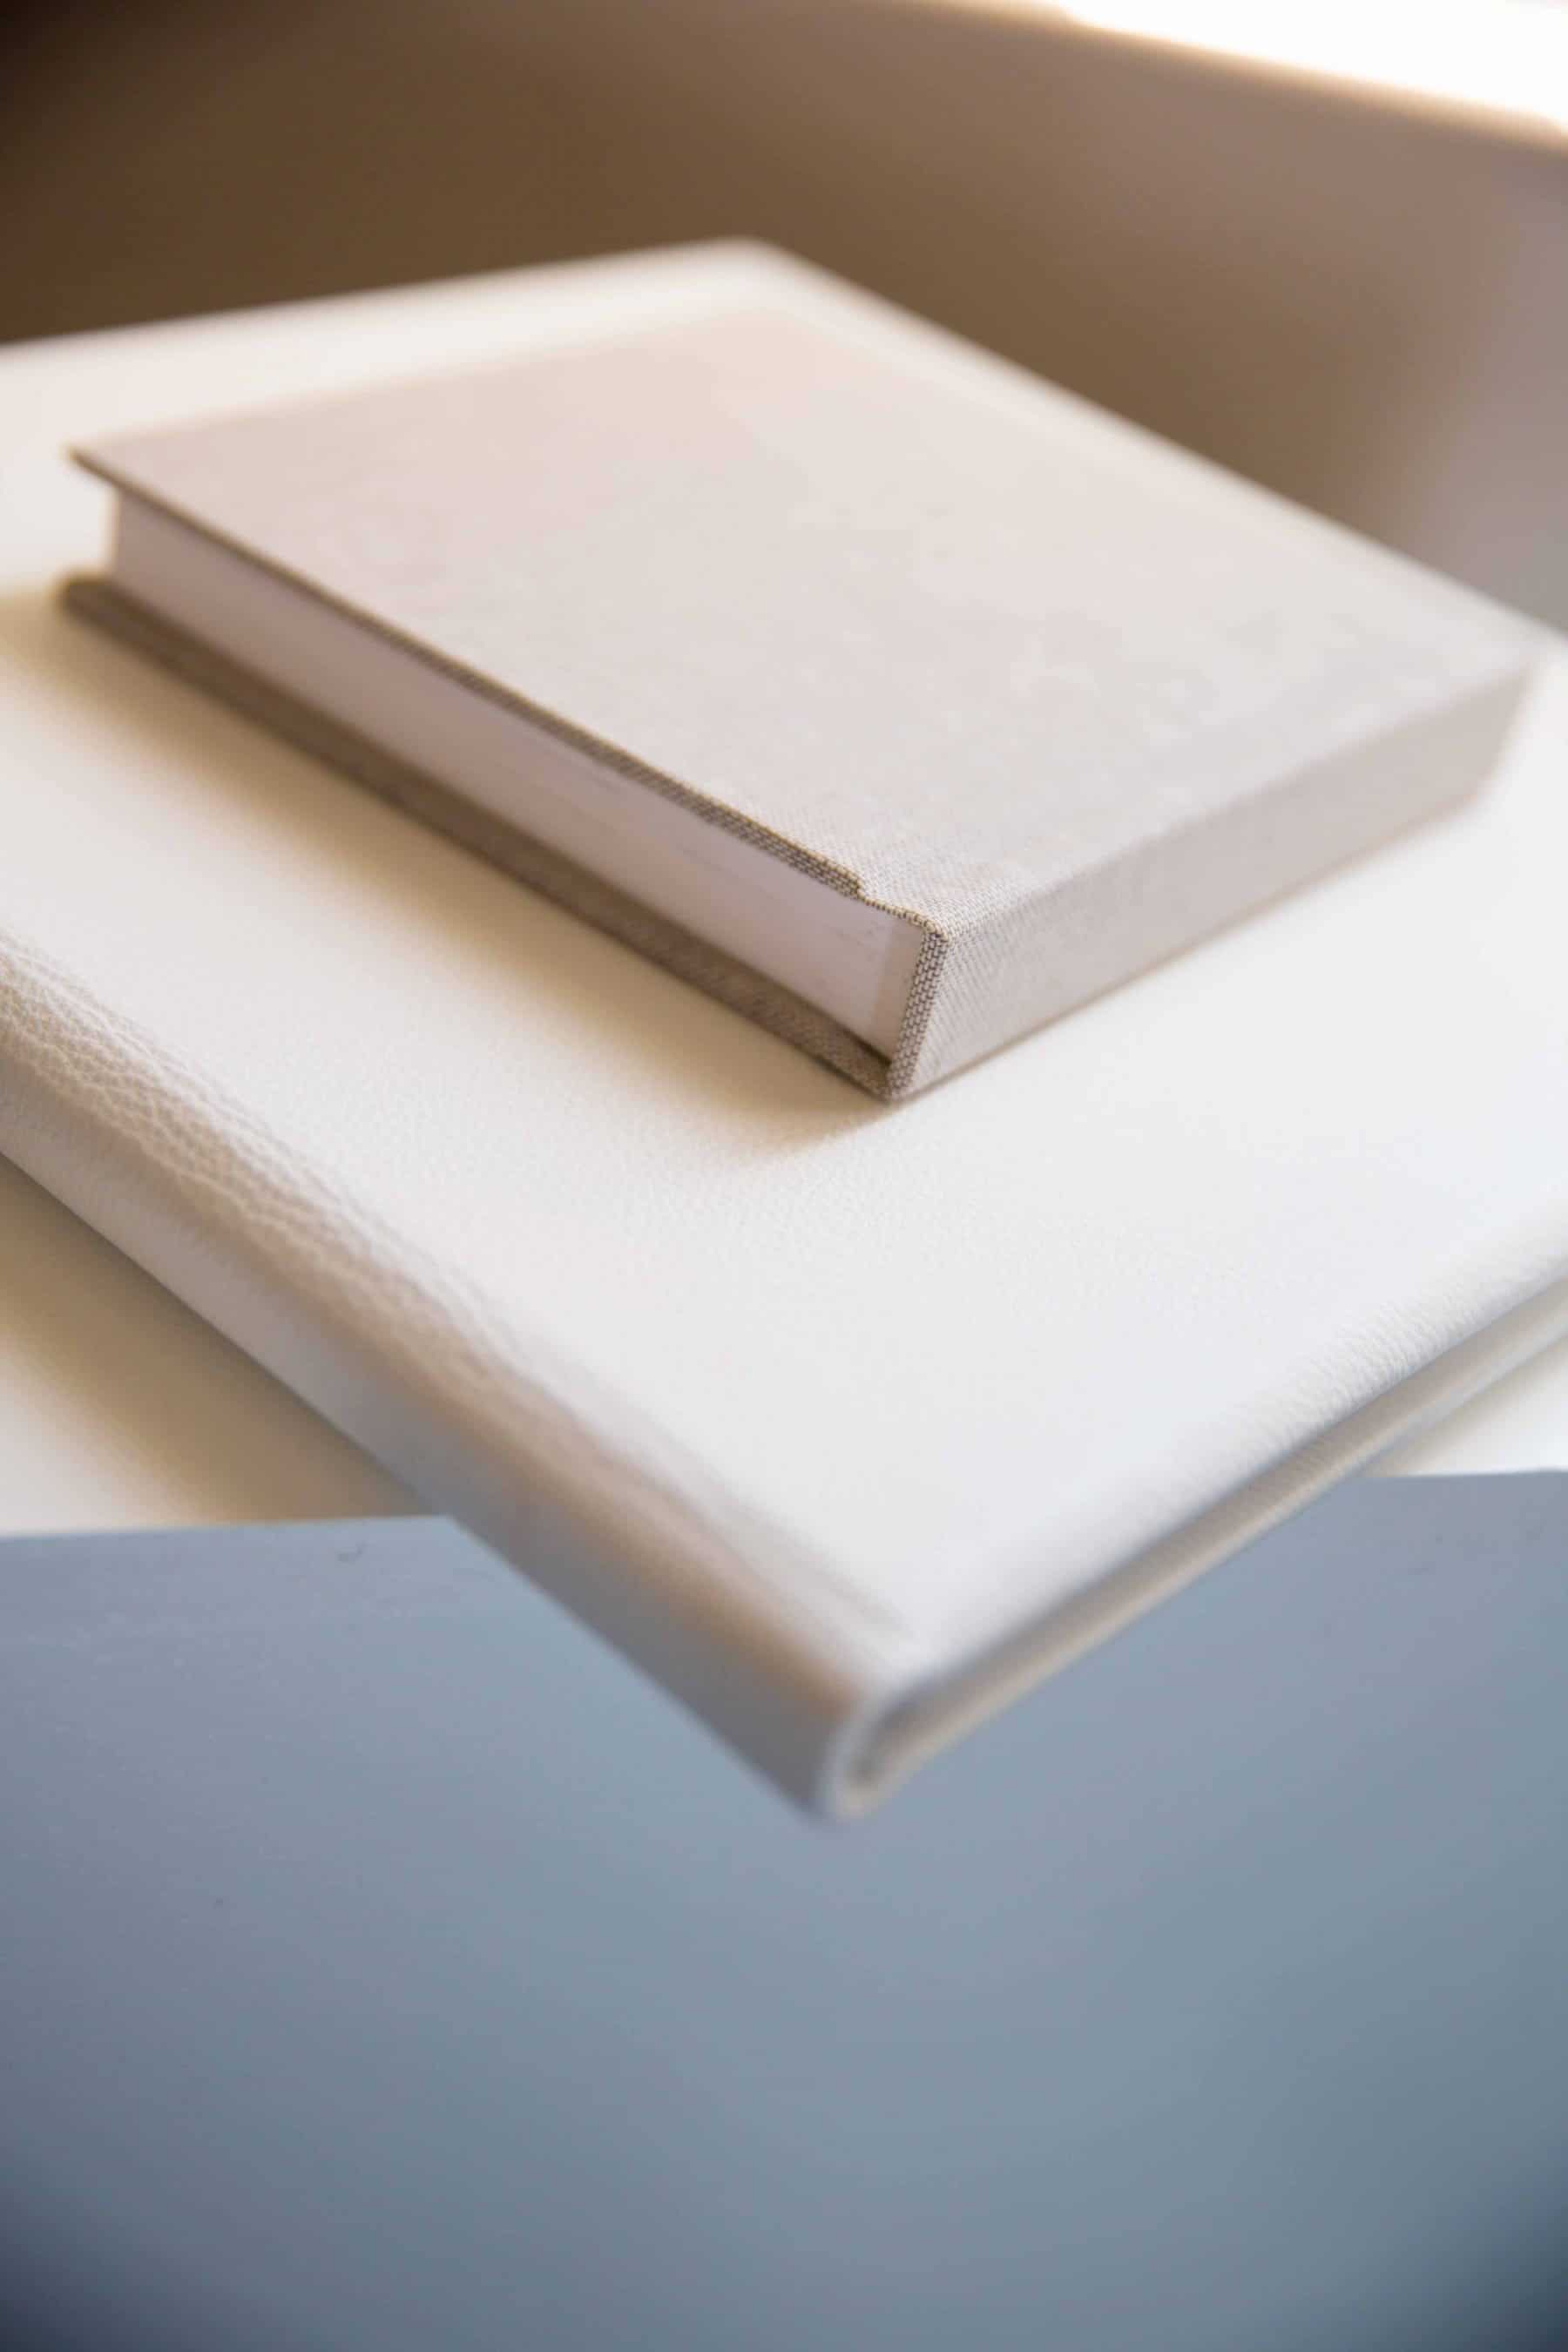 showing the different sizes of the wedding albums stock both small and large